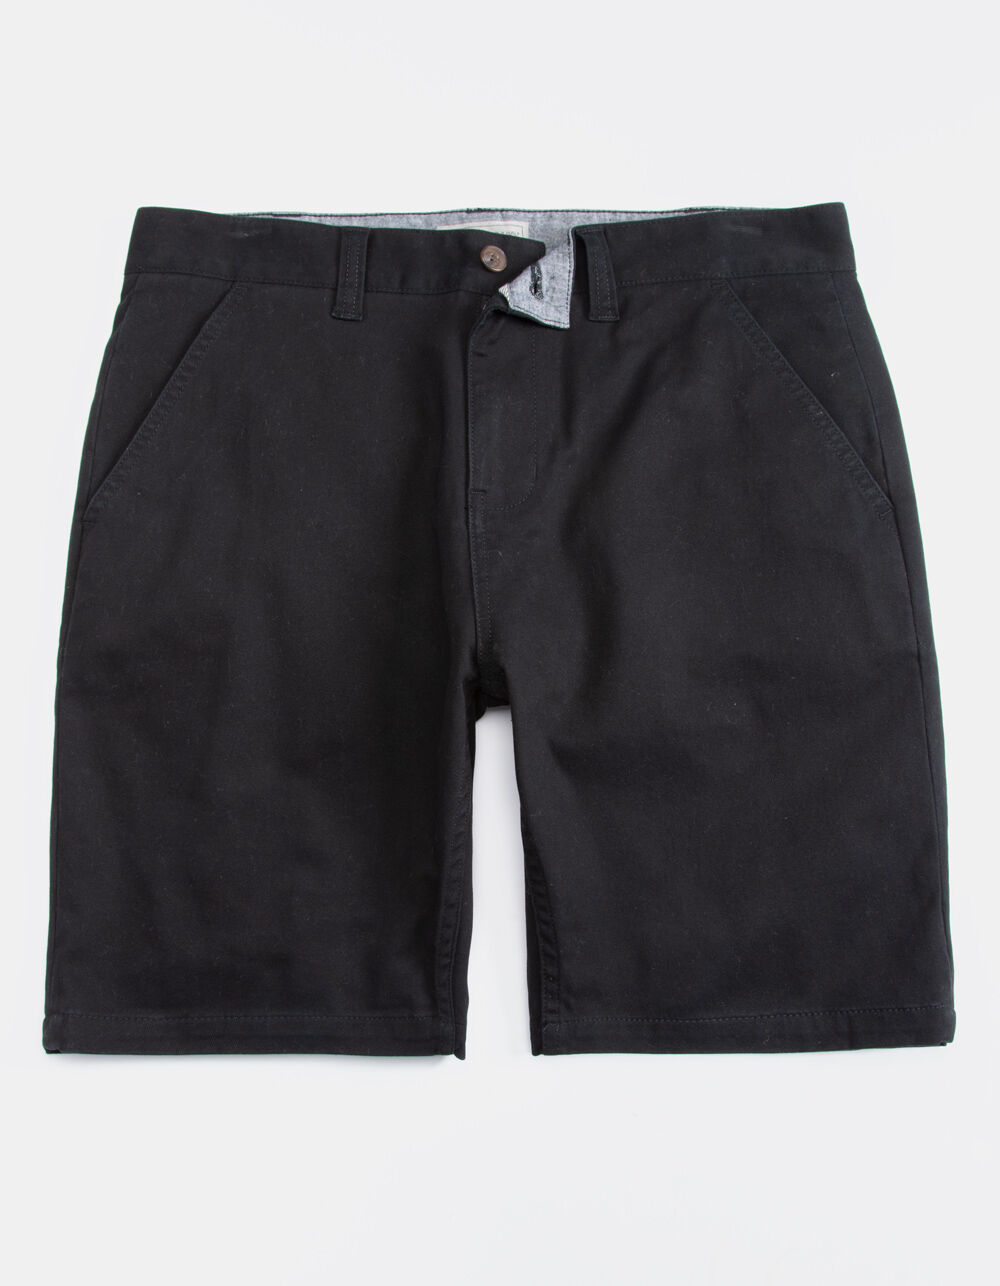 CHARLES AND A HALF Lincoln Stretch Black Shorts